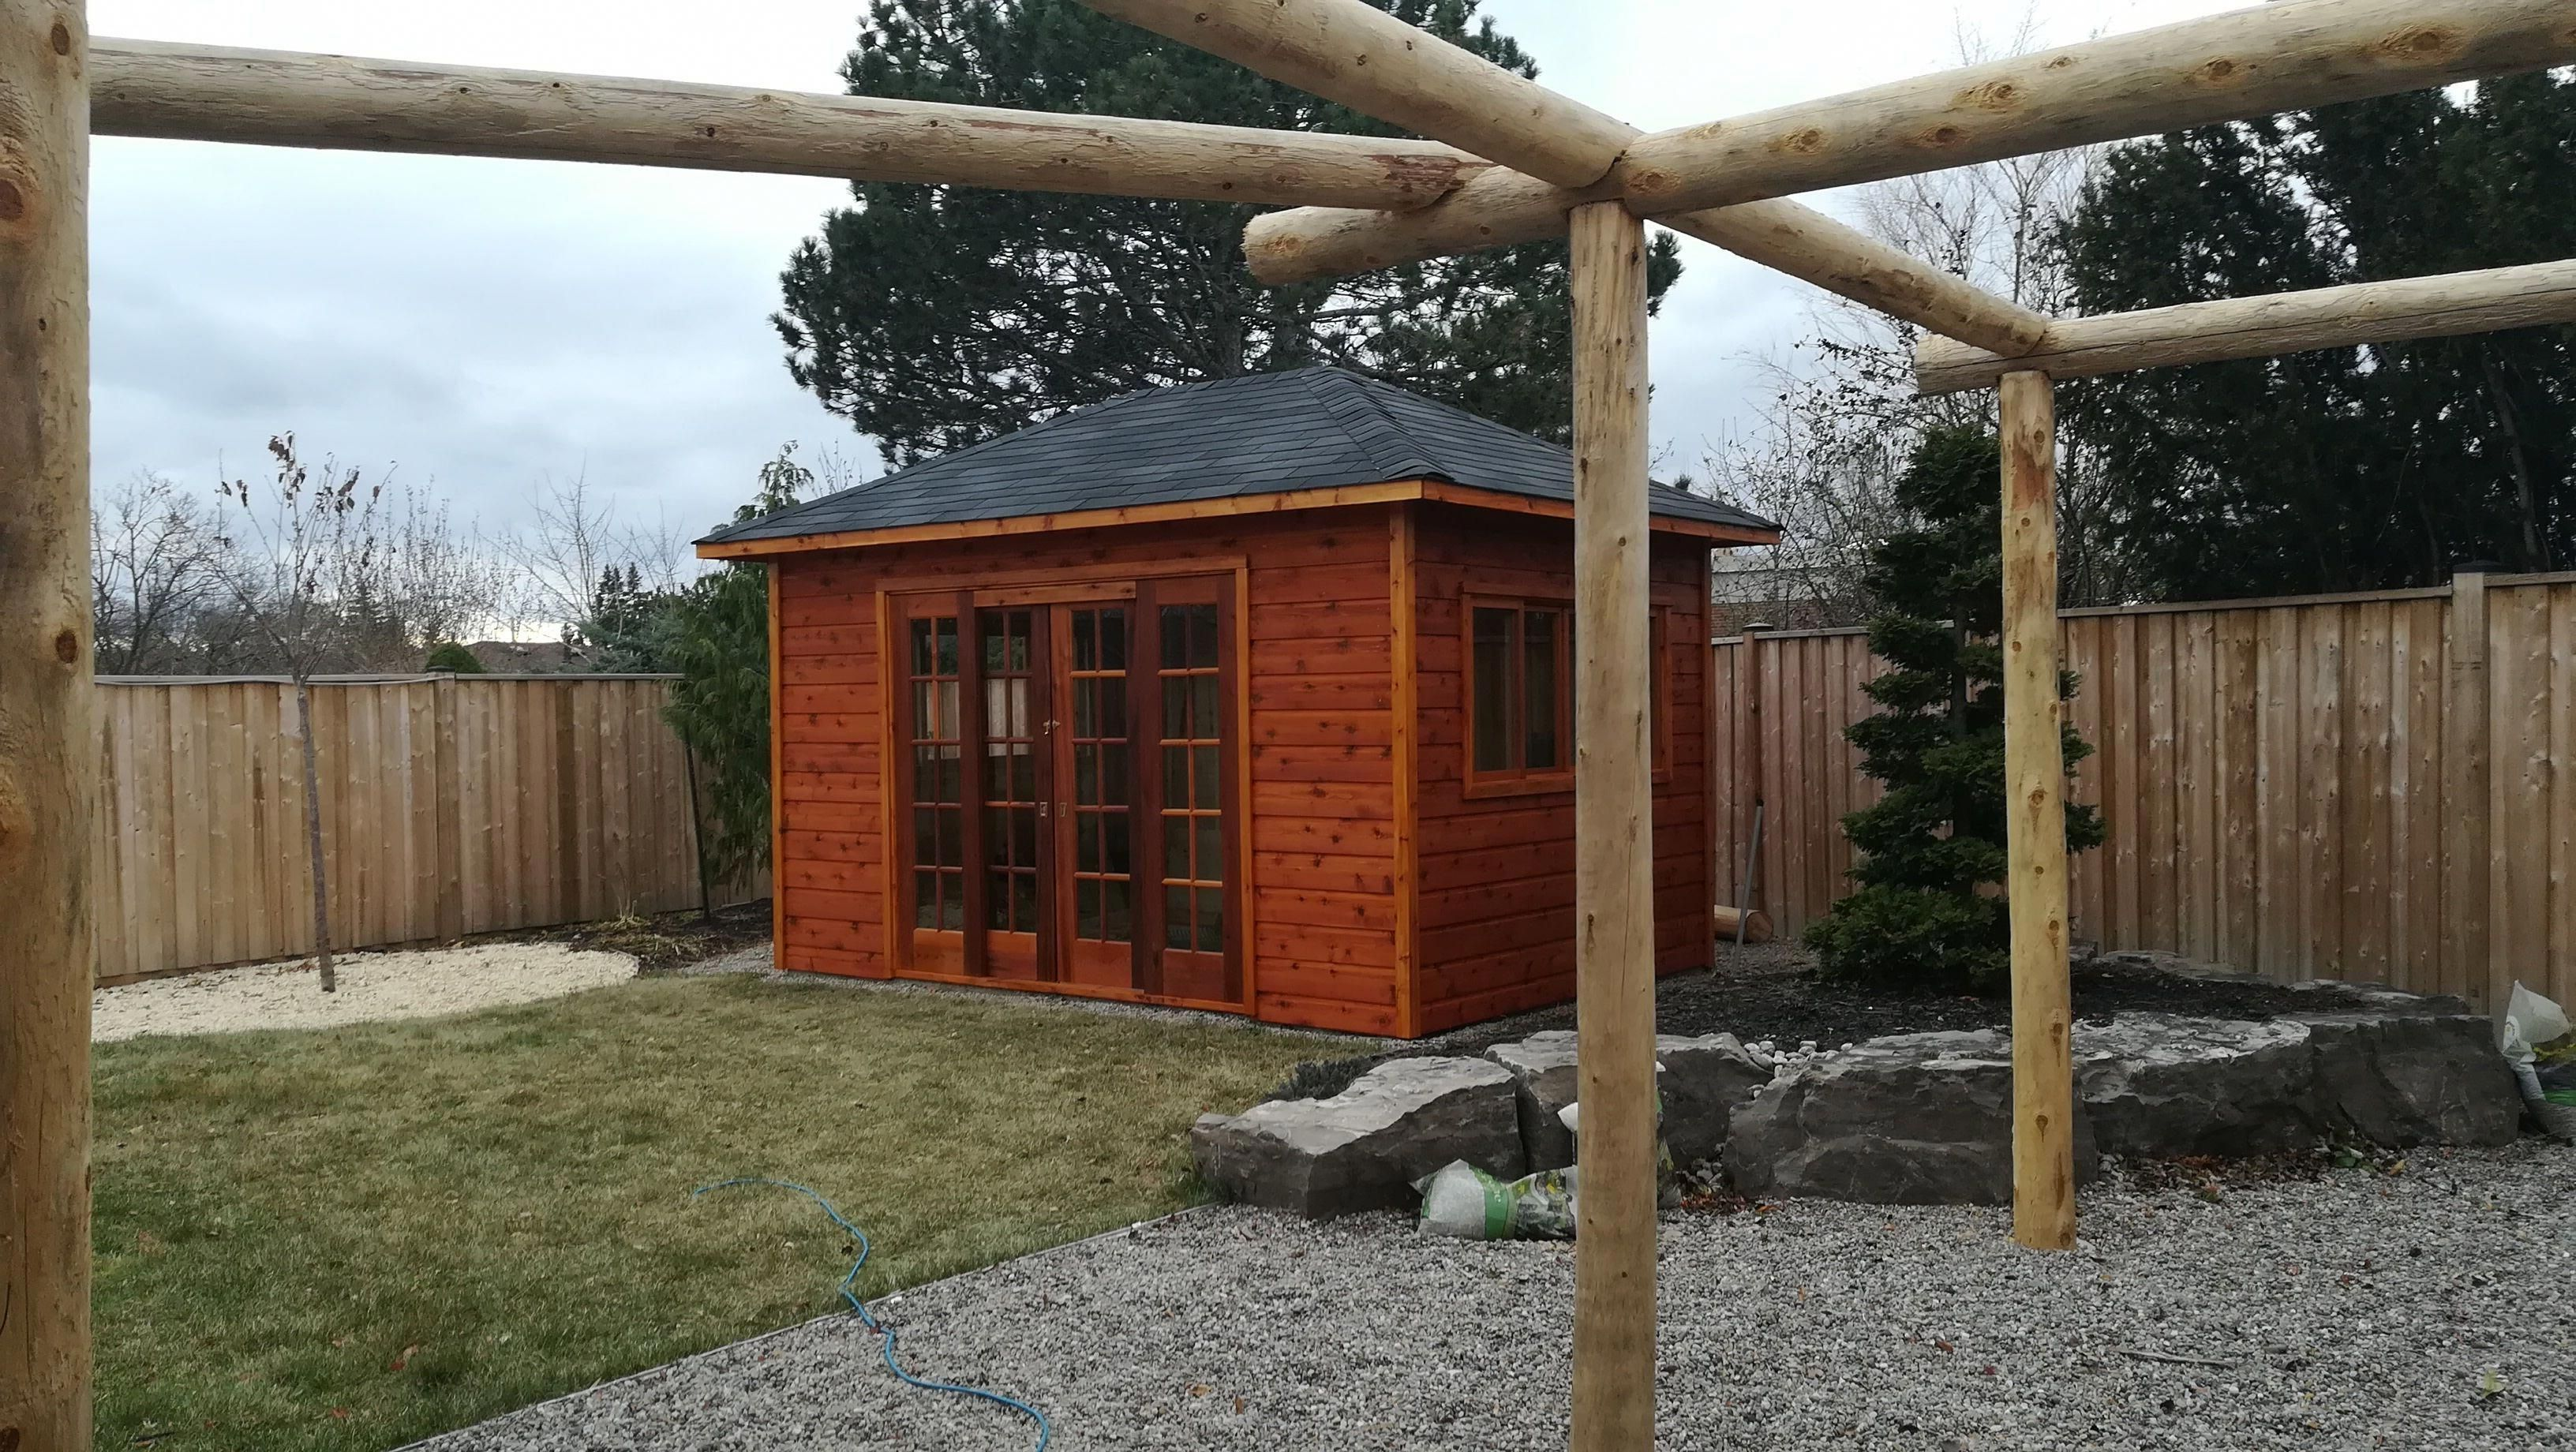 10 X 14 Sonoma Garden Shed In Brampton Ontario Shedbuildingideas With Images Garden Shed Kits Garden Shed Building A Shed